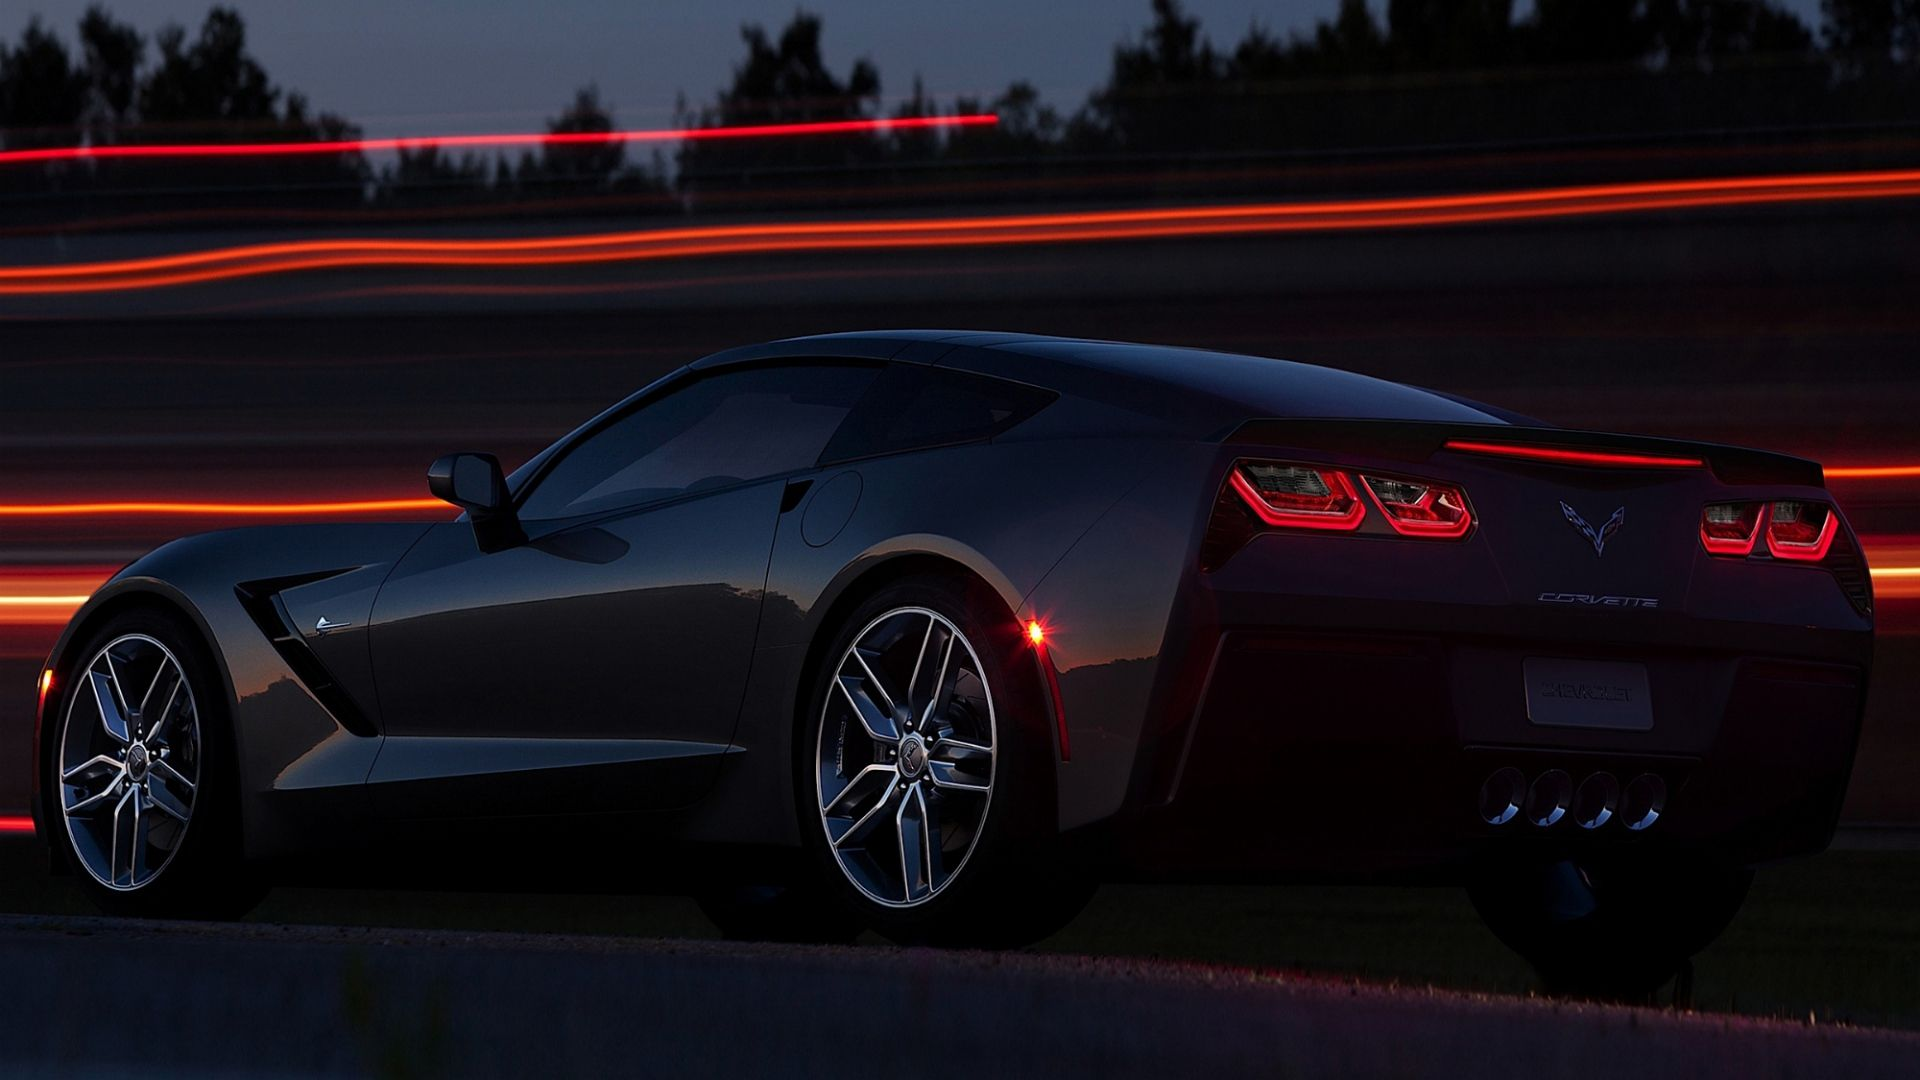 1920x1080 wallpaper chevrolet corvette stingray c7